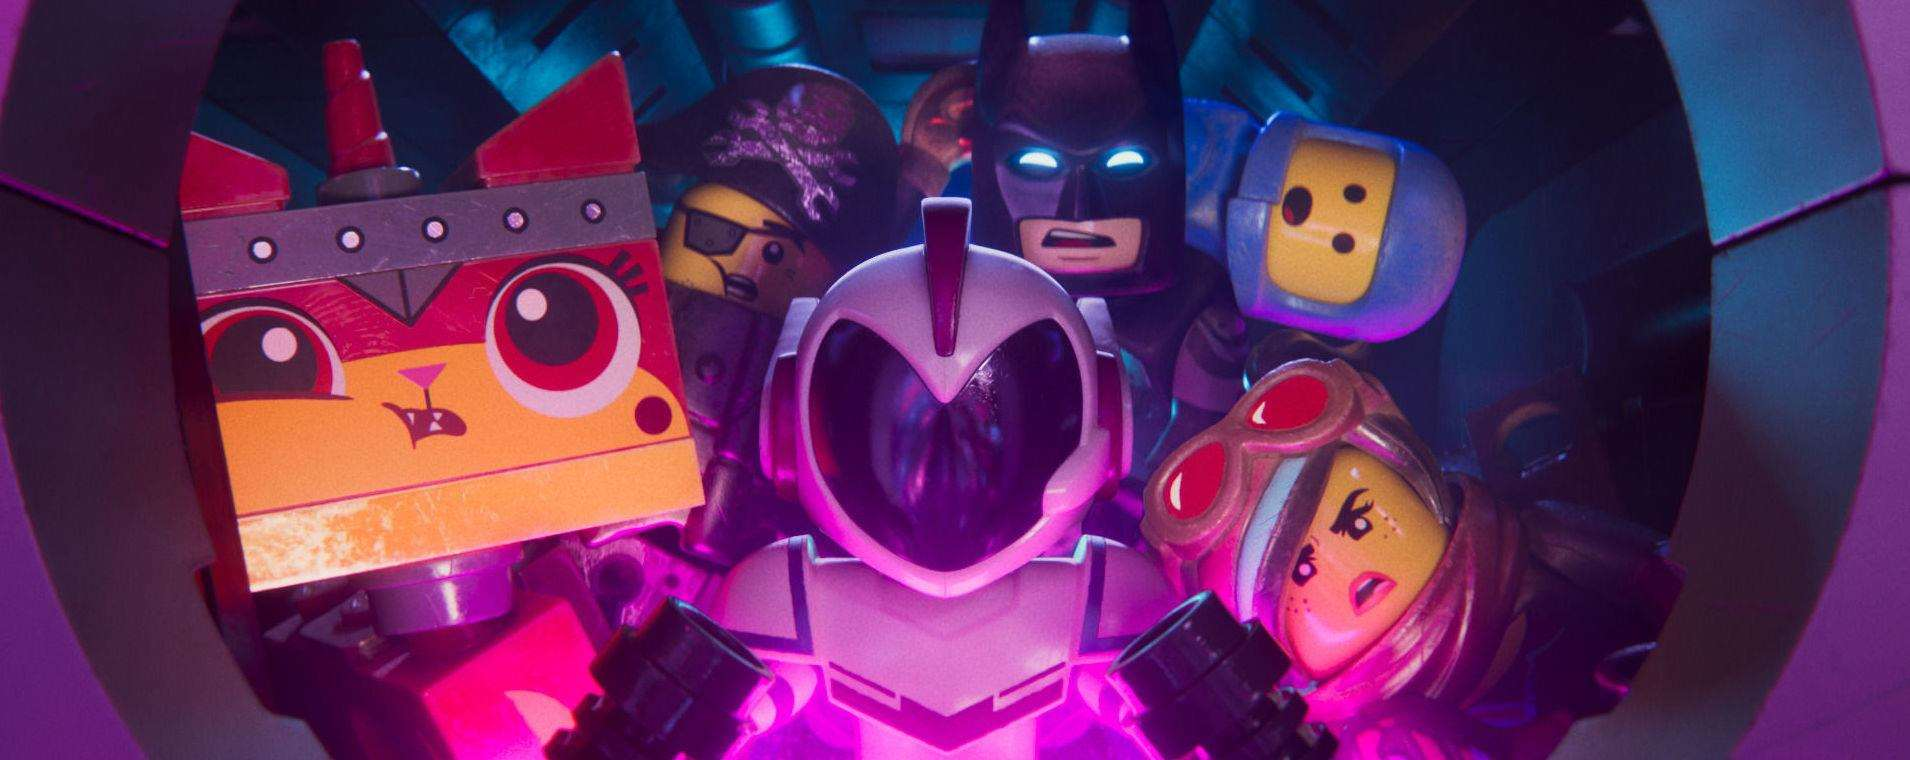 Unikitty (voiced by Alison Brie), MetalBeard (Nick Offerman), General Mayhem (Stefanie Beatriz), Batman (Will Arnett), Benny (Charlie Day) and Lucy (Elizabeth Banks). Picture: PA Photo/Warner Bros. Entertainment Inc